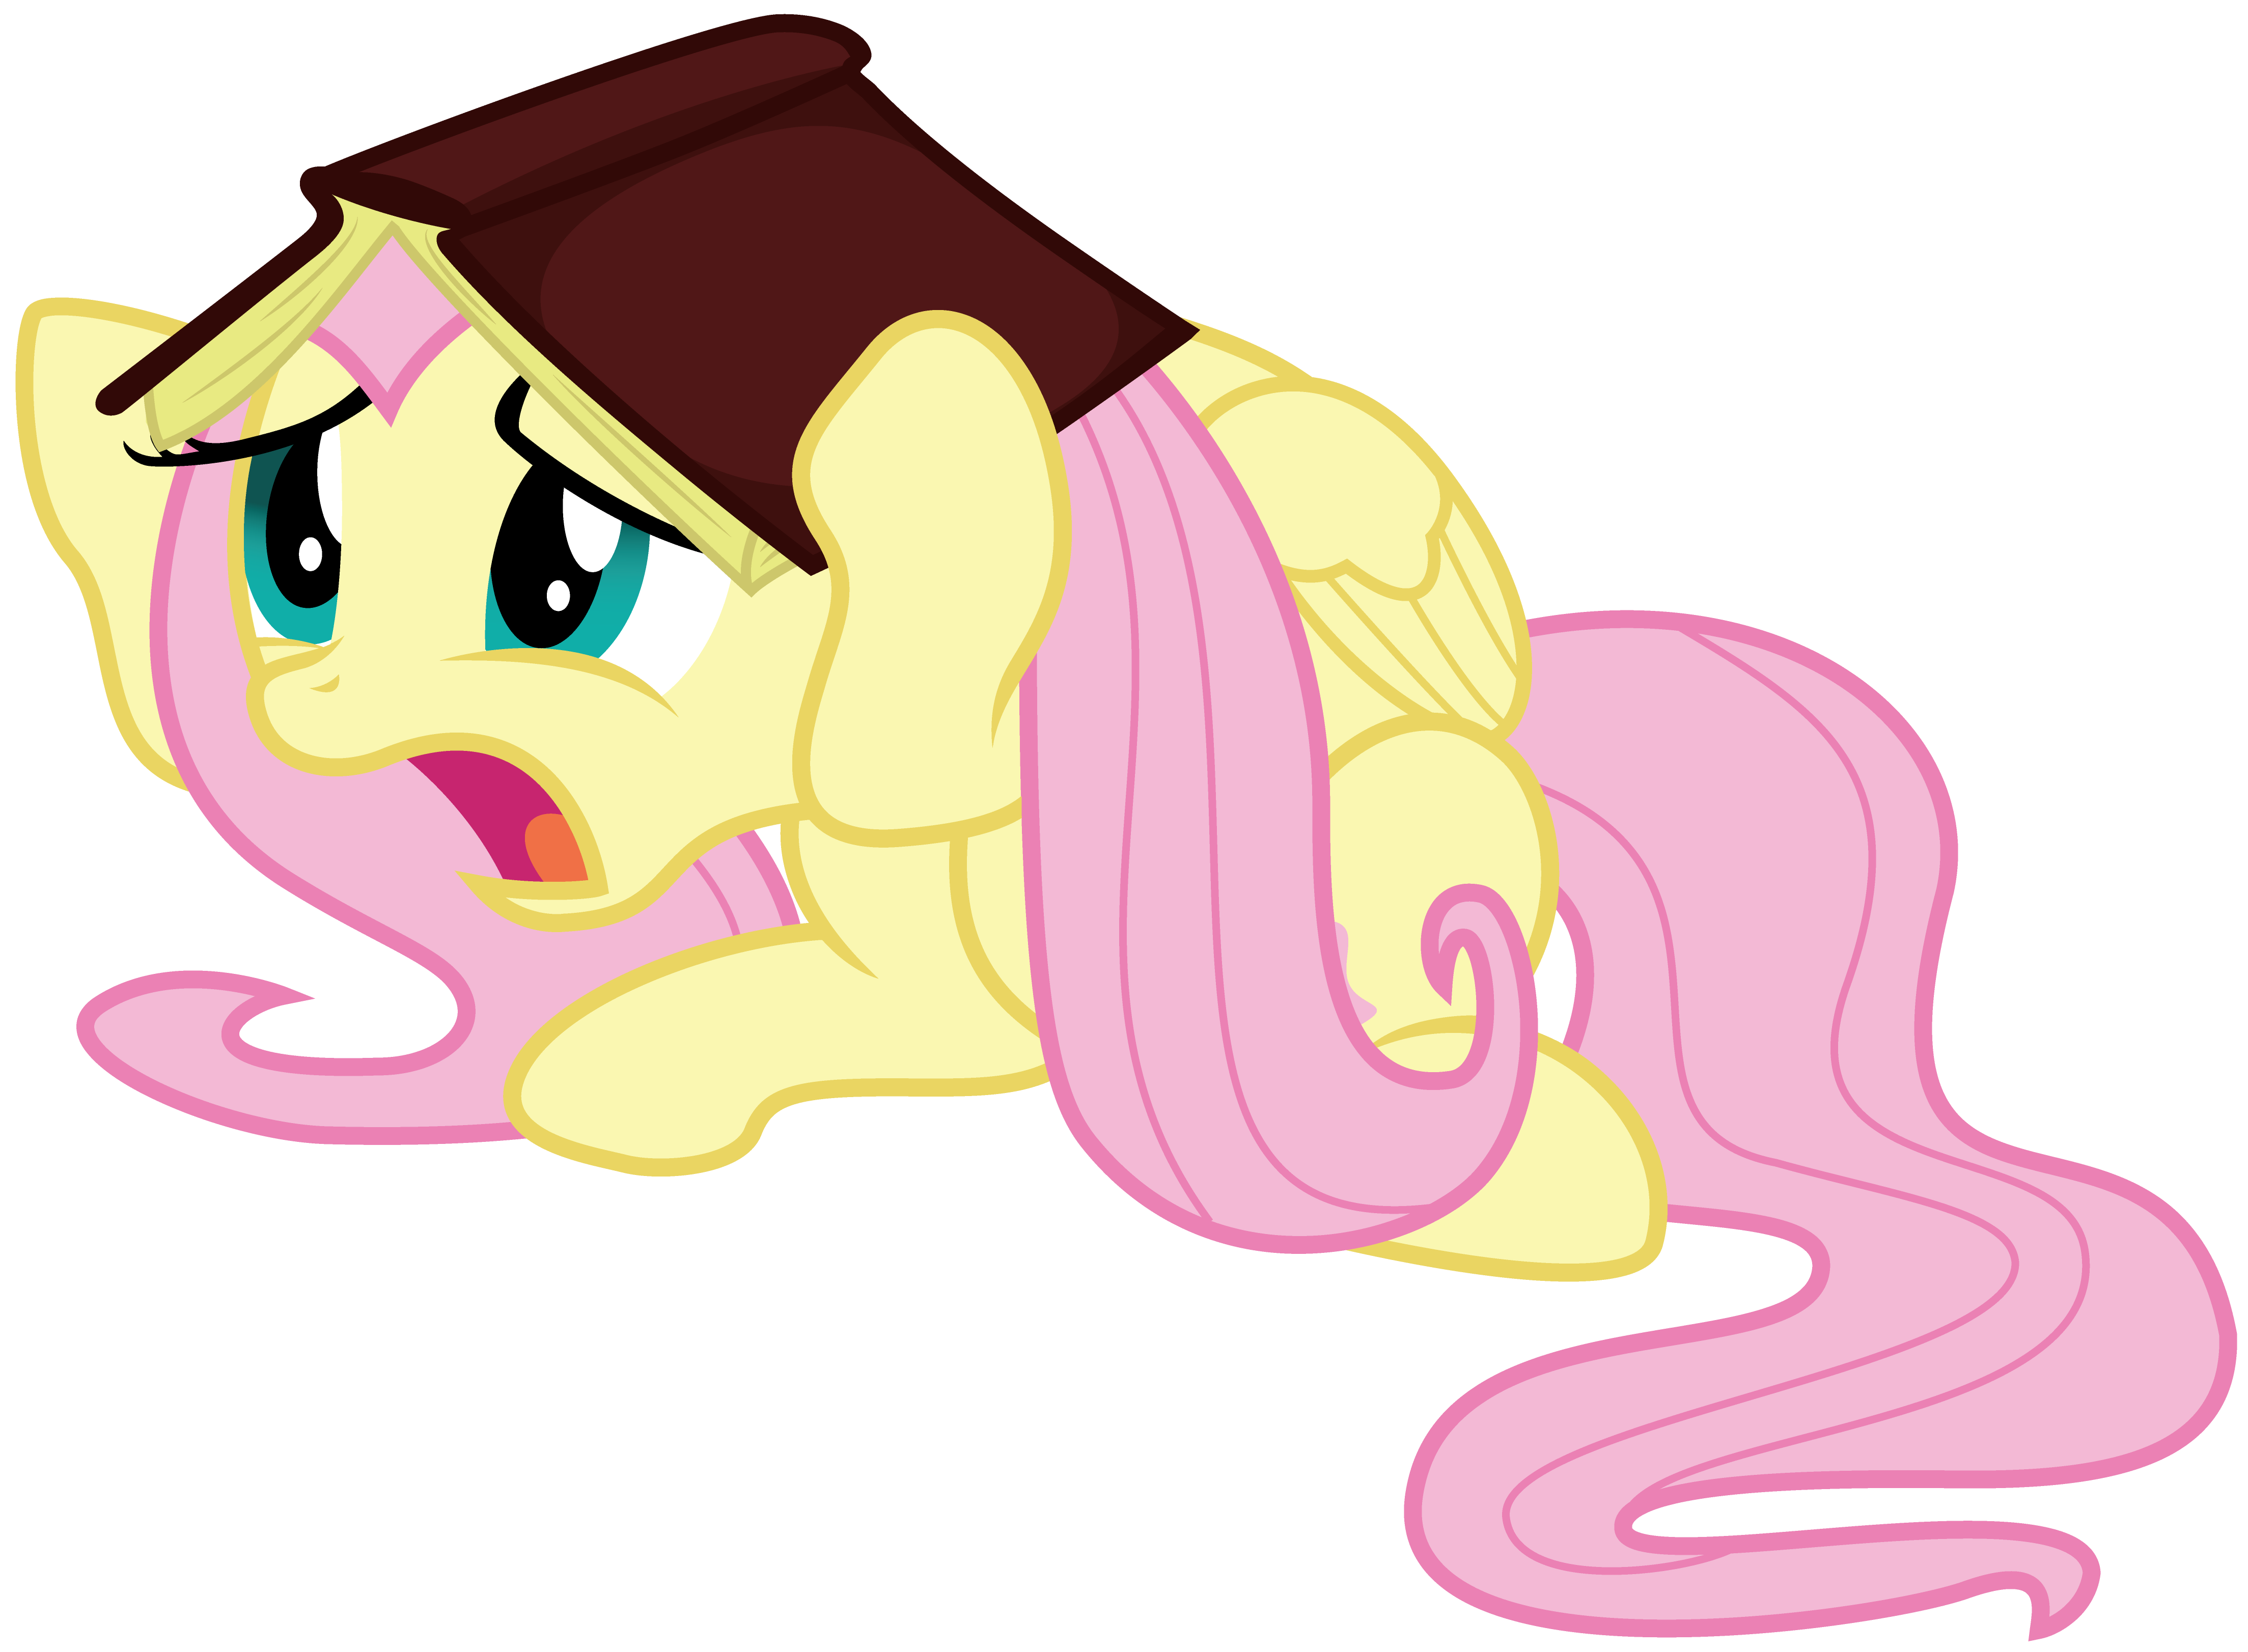 flutterbook_by_reallyunimportant-d5ps8ud.png